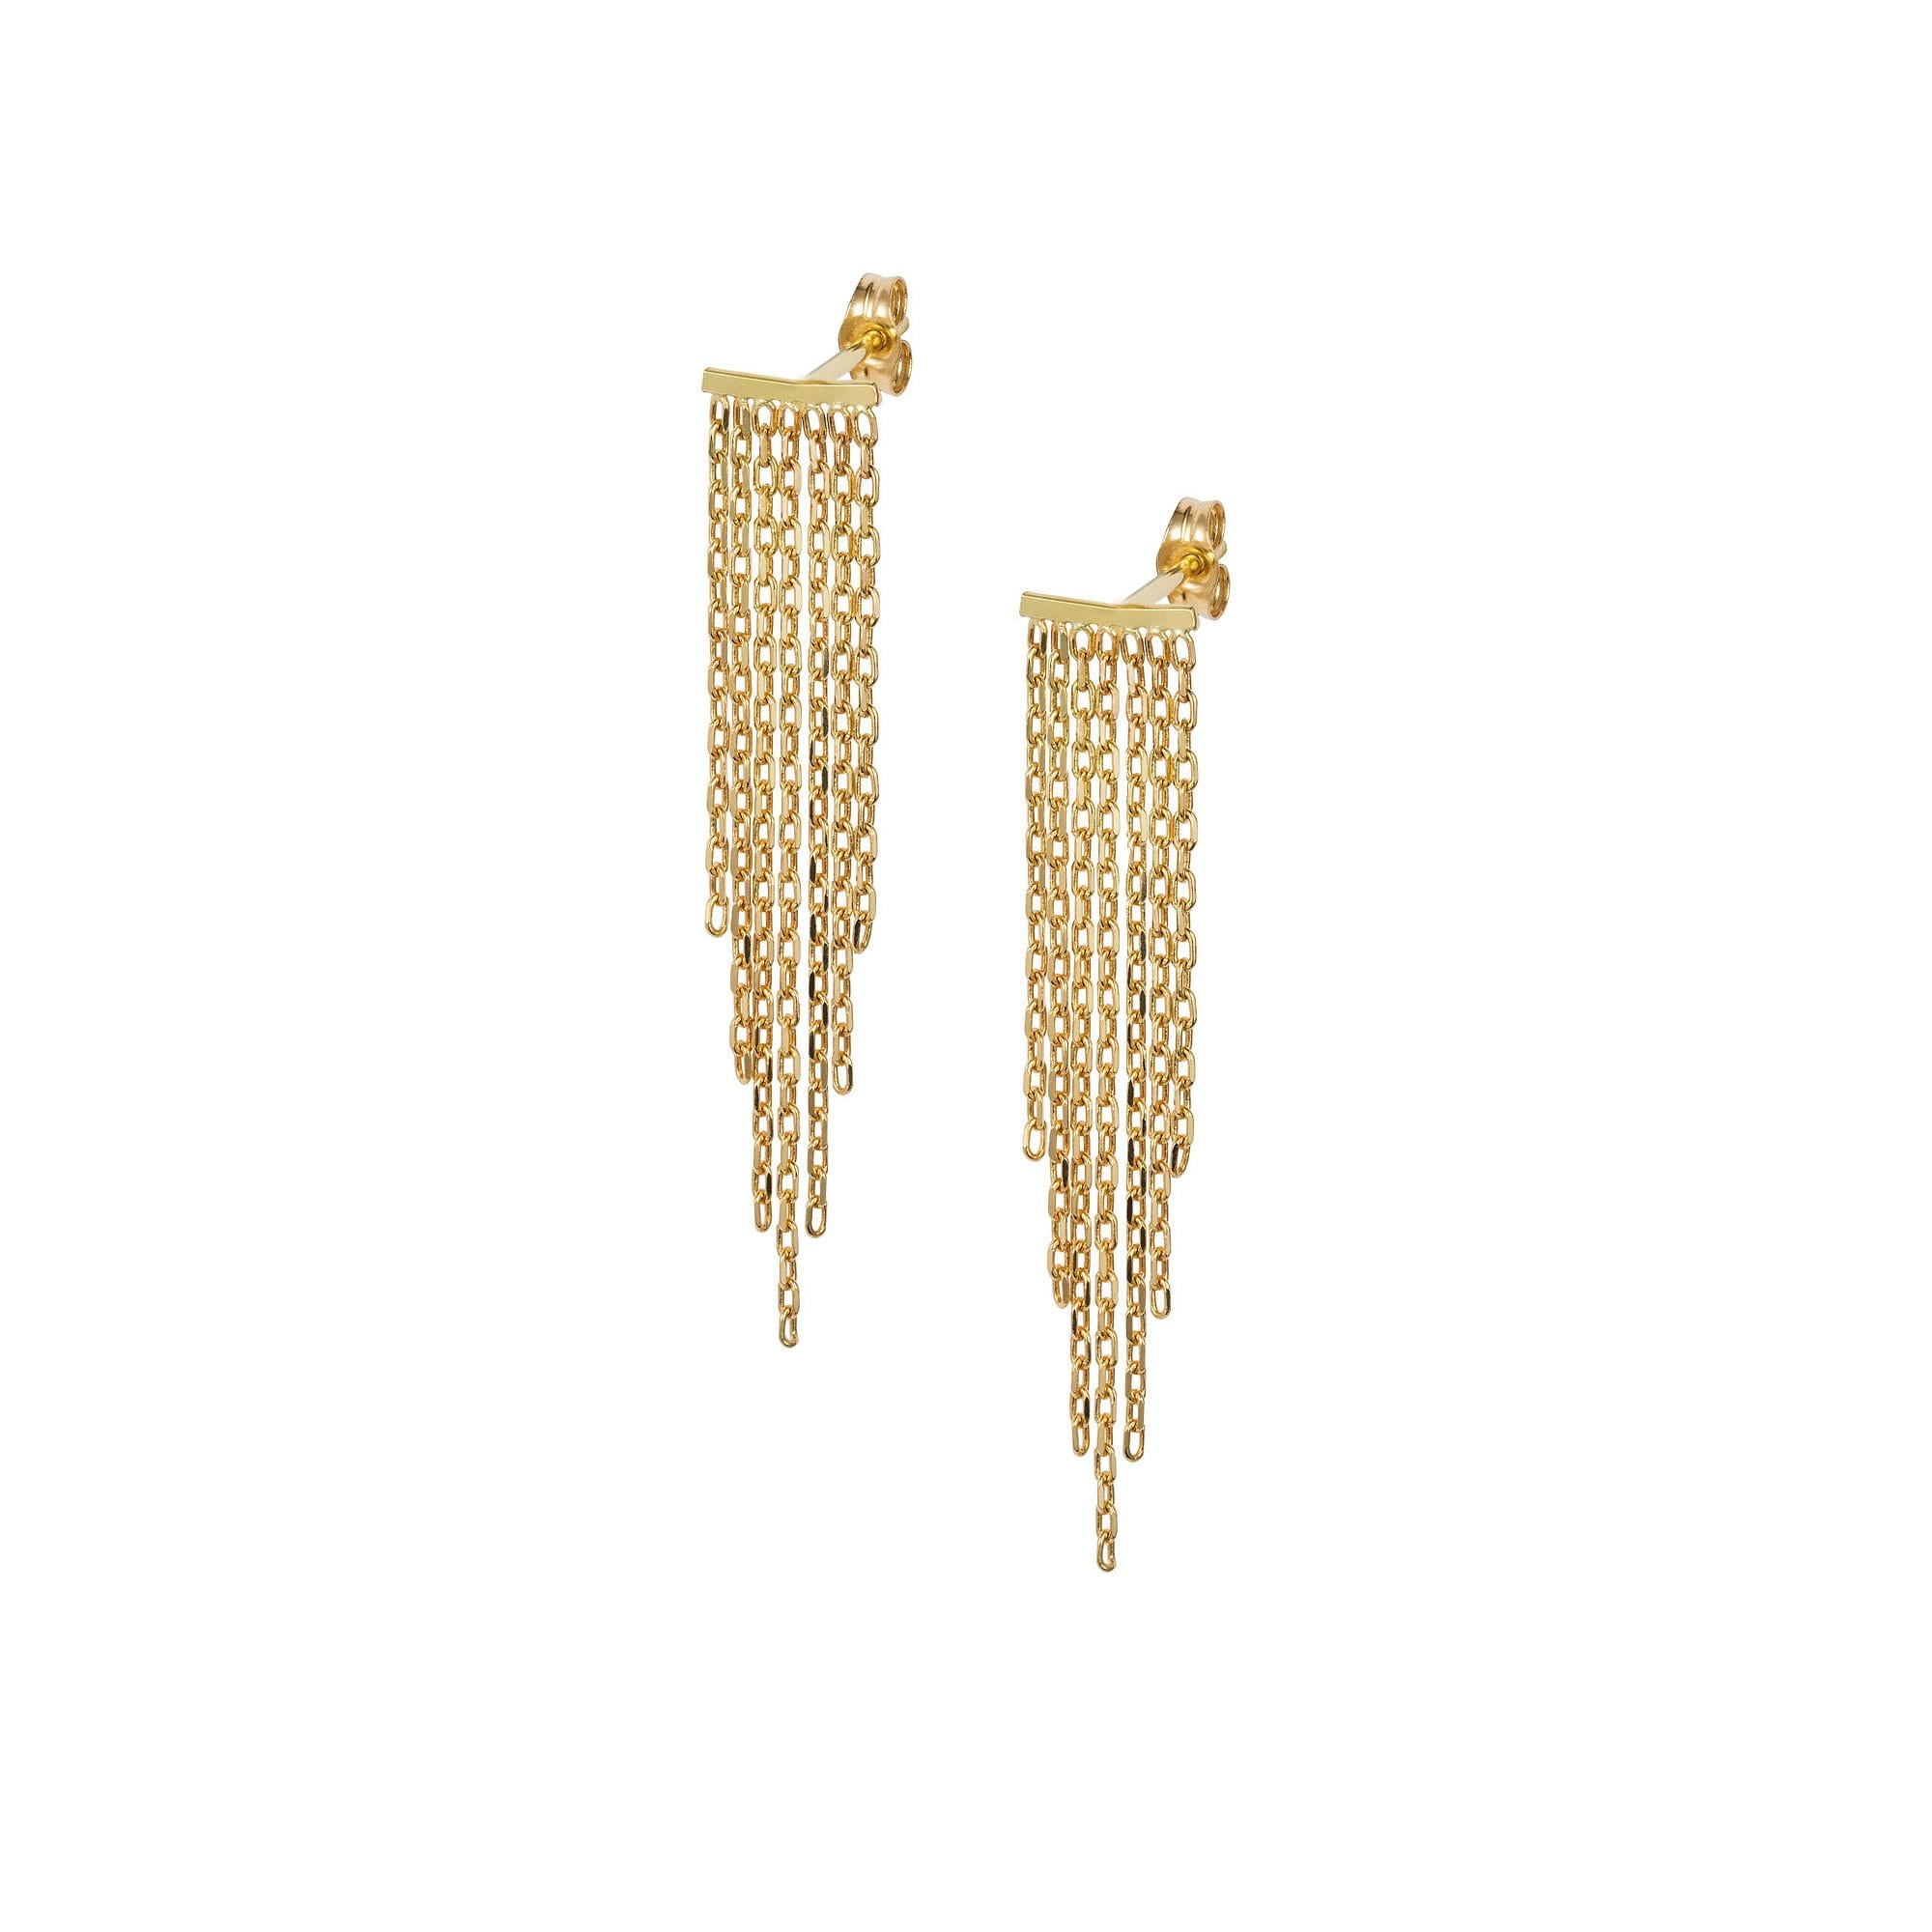 Vincents Fine Jewelry | Sweet Pea | Fabulous Fringe Earrings